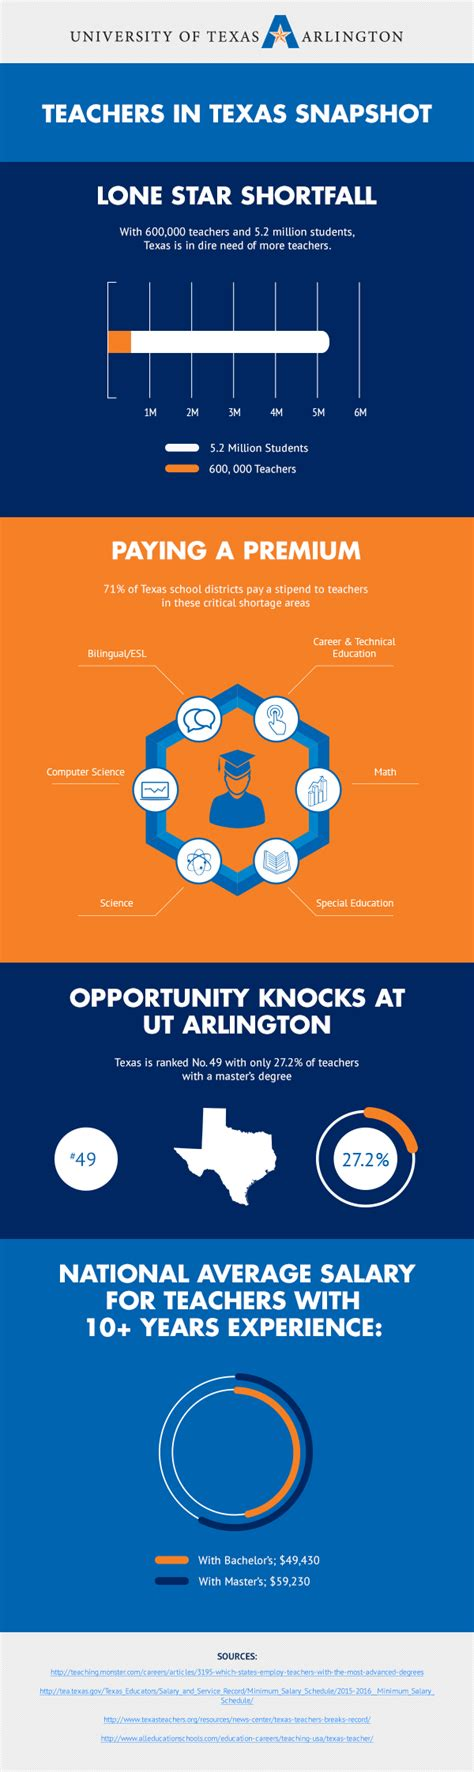 Mba Concentrations In Demand 2015 by A Look At Teachers In Uta